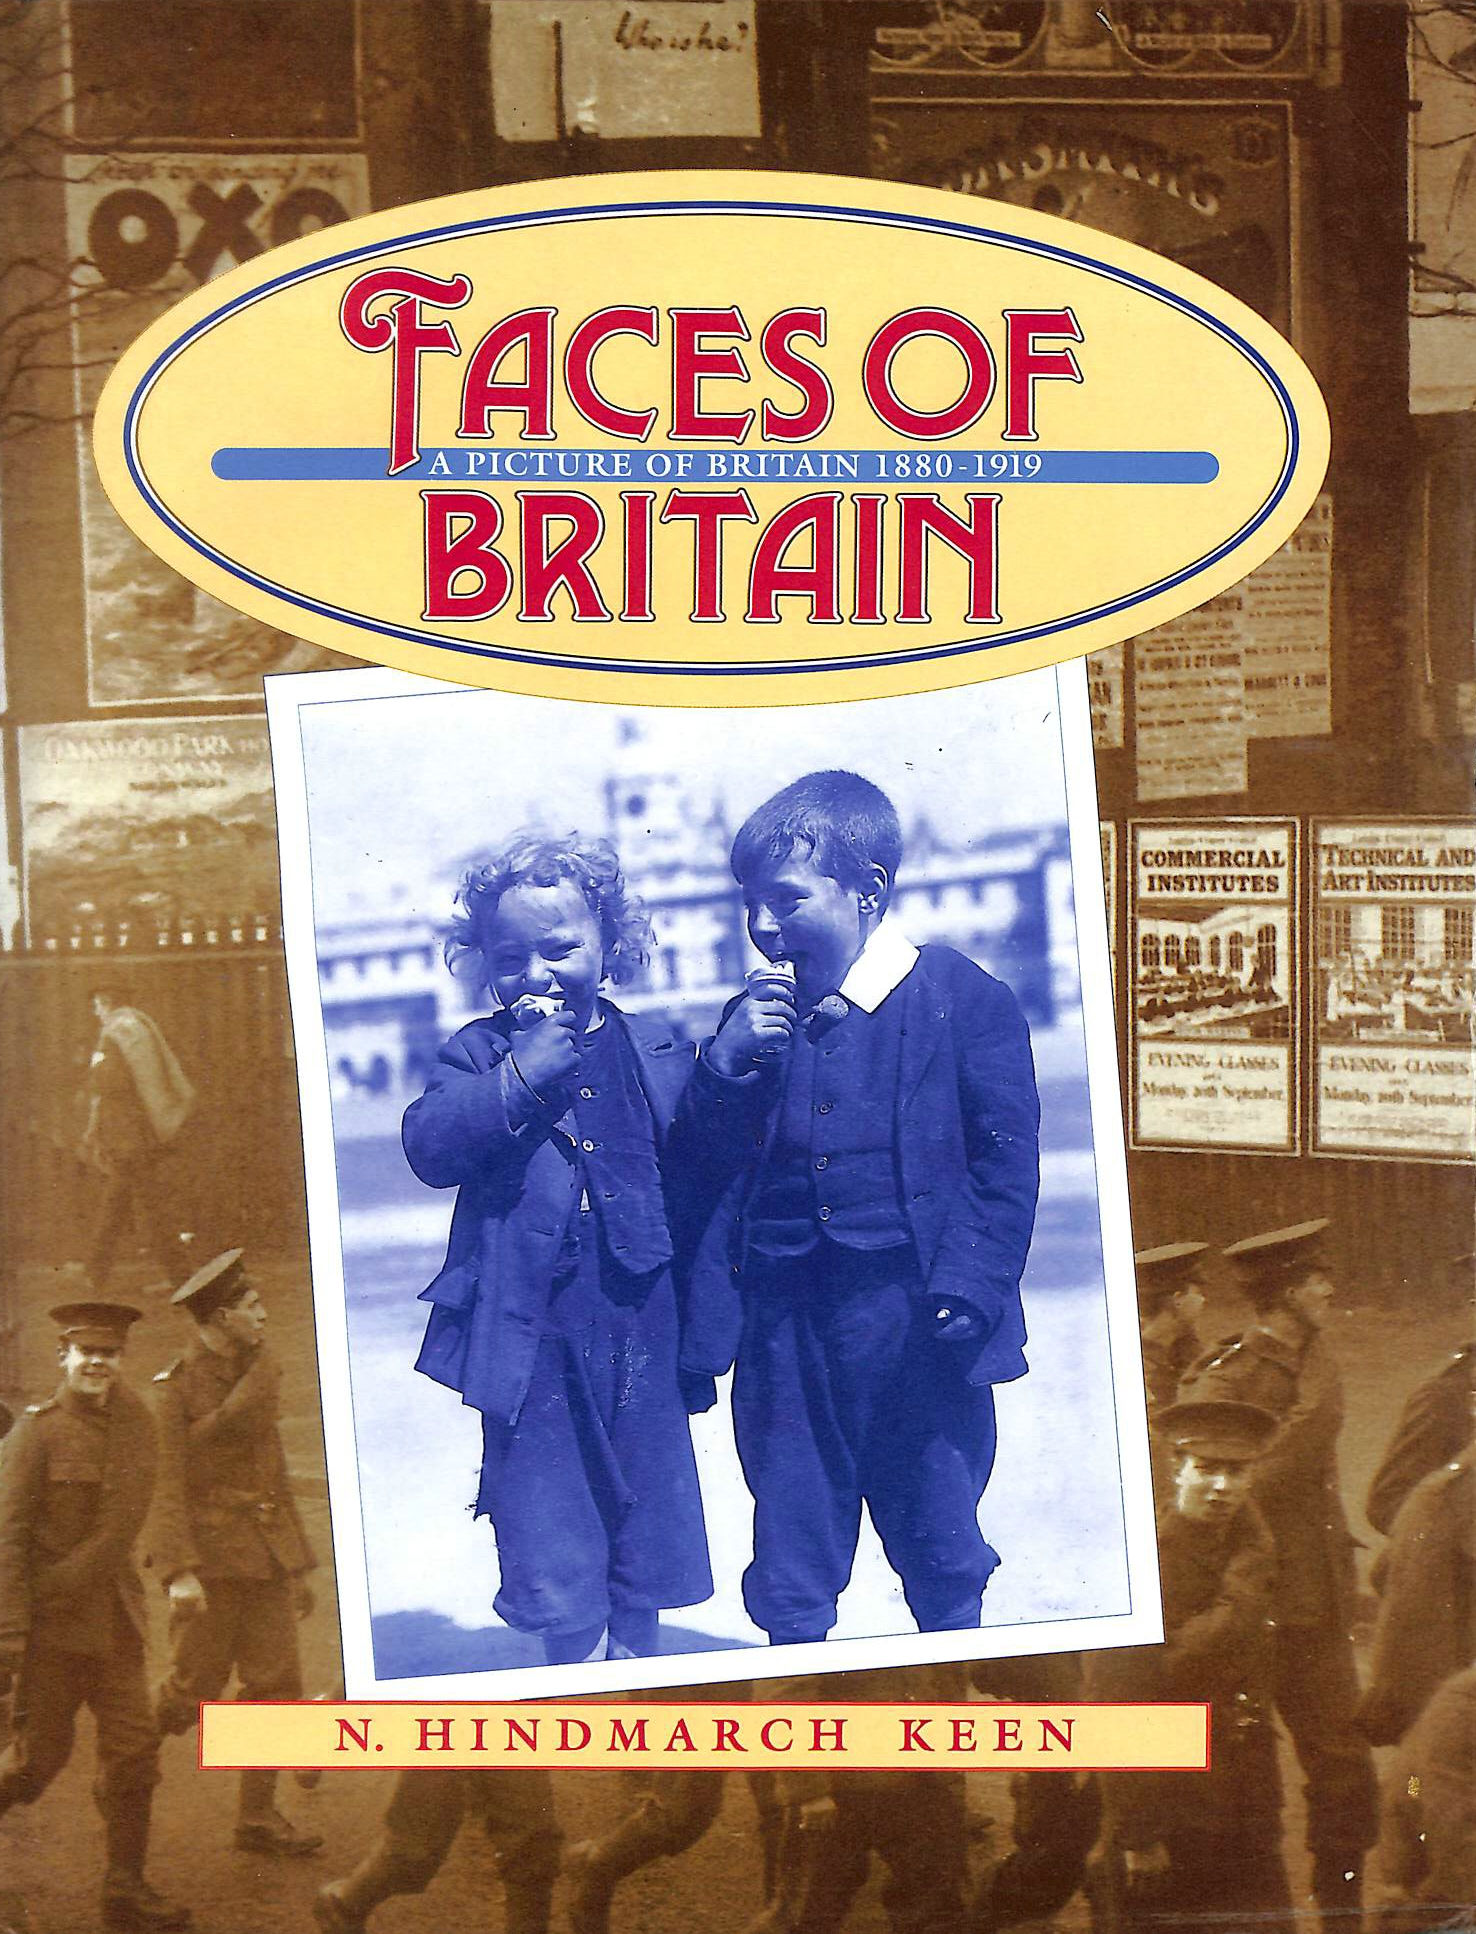 Image for Faces of Britain, a Picture of Britain 1880-1919